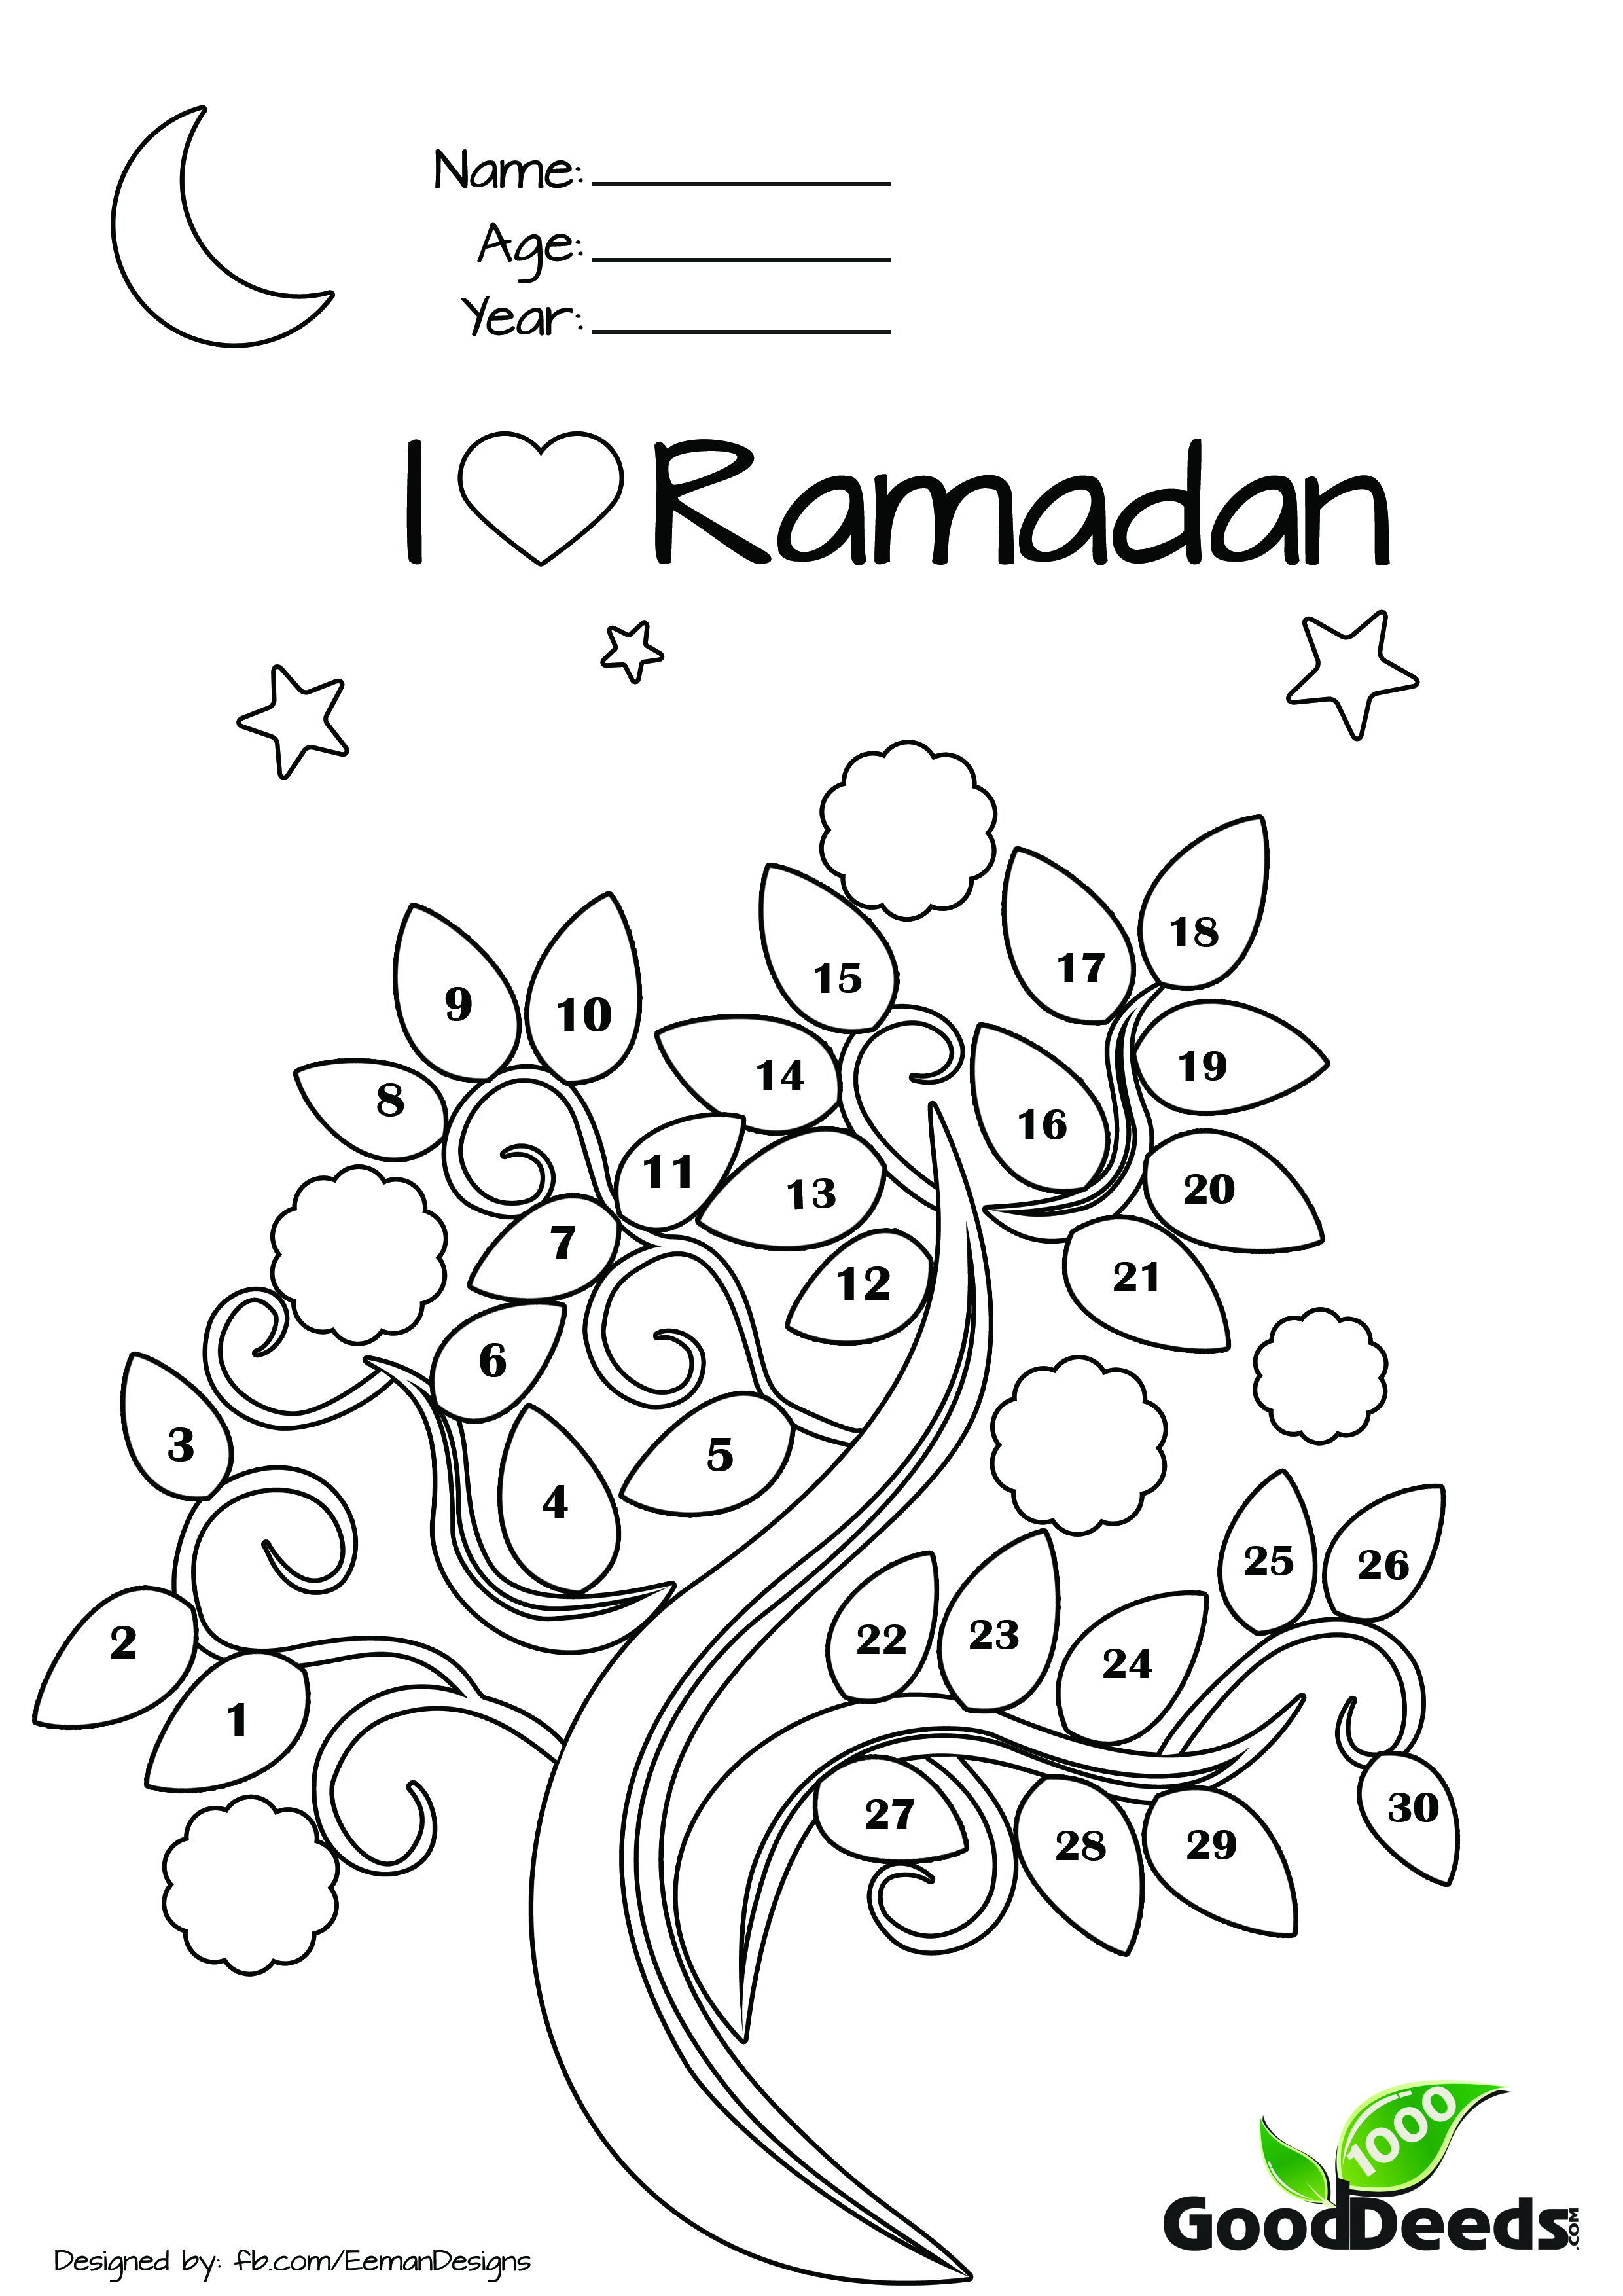 Ramadan Fasting Chart For Children Ask Nanima